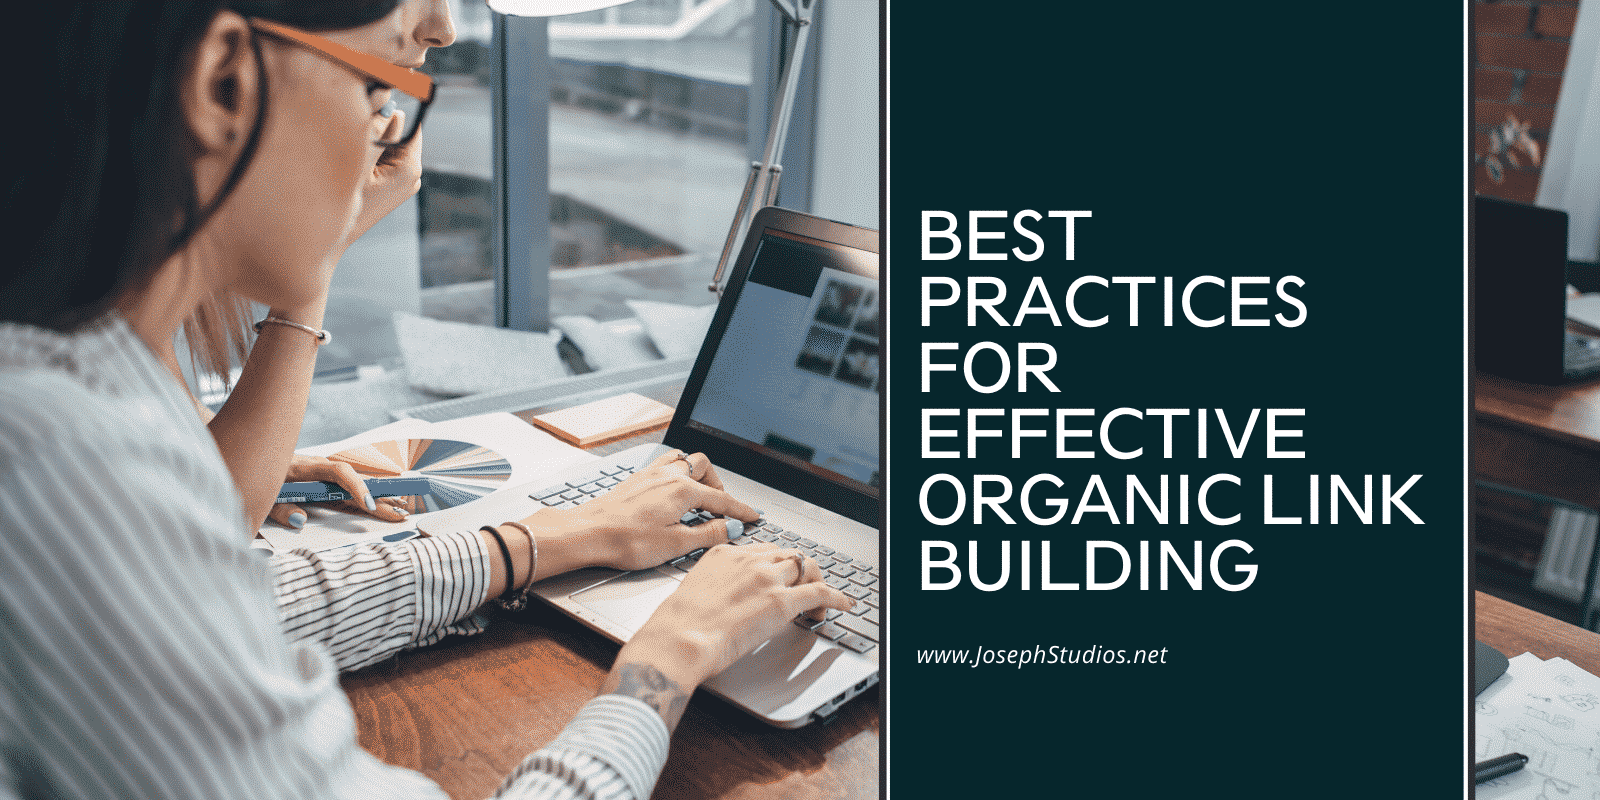 Best Practices for Effective Organic Link Building